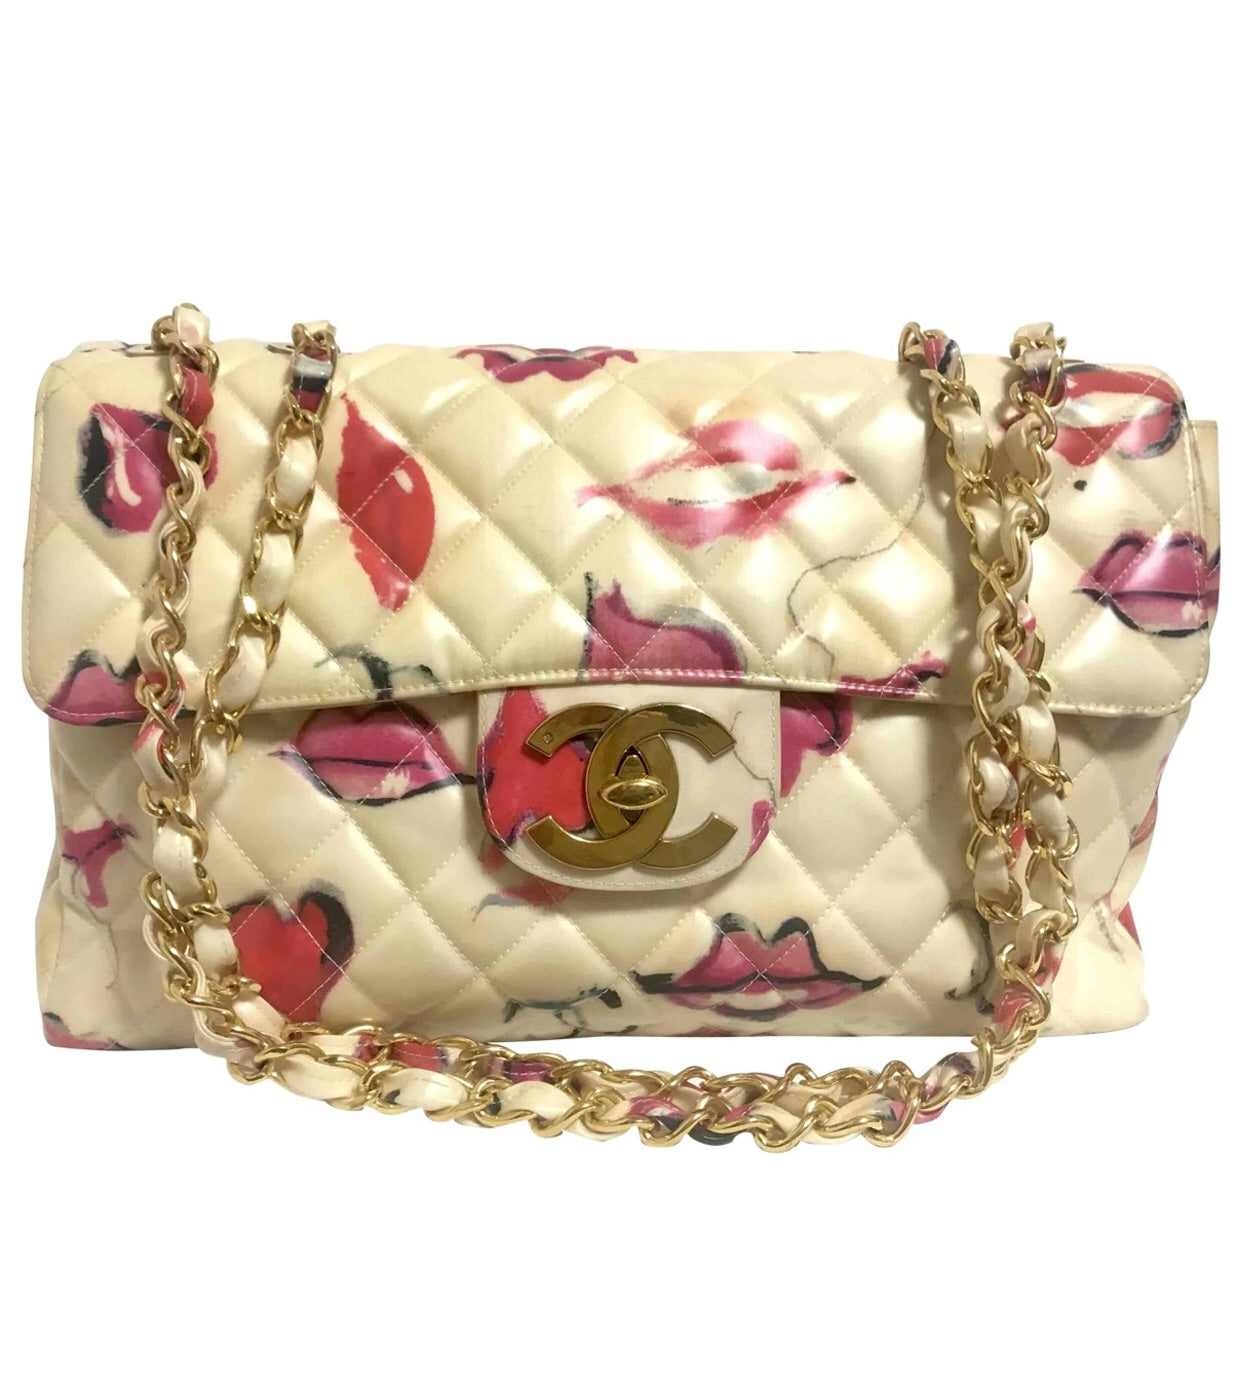 cc664cdbaf84 Vintage CHANEL cream vinyl coated canvas 2.55 jumbo chain shoulder bag with  CC mark and lip